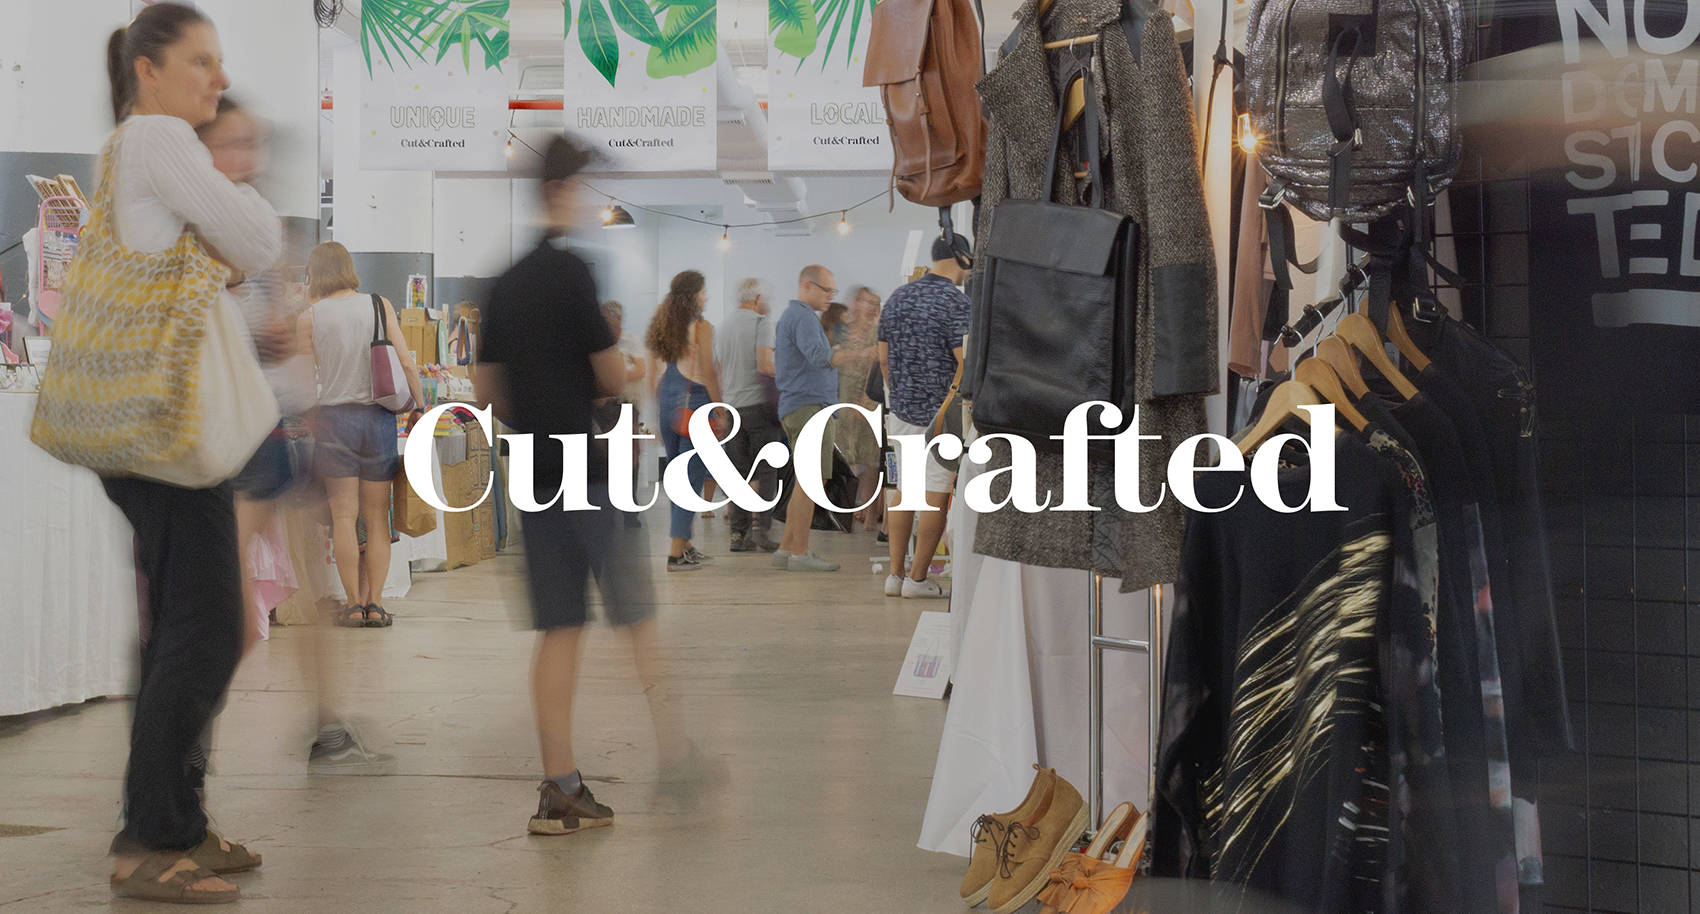 Cut & Crafted Branding with the Brooklyn Holiday Bazaar (Sping Edition) in the background